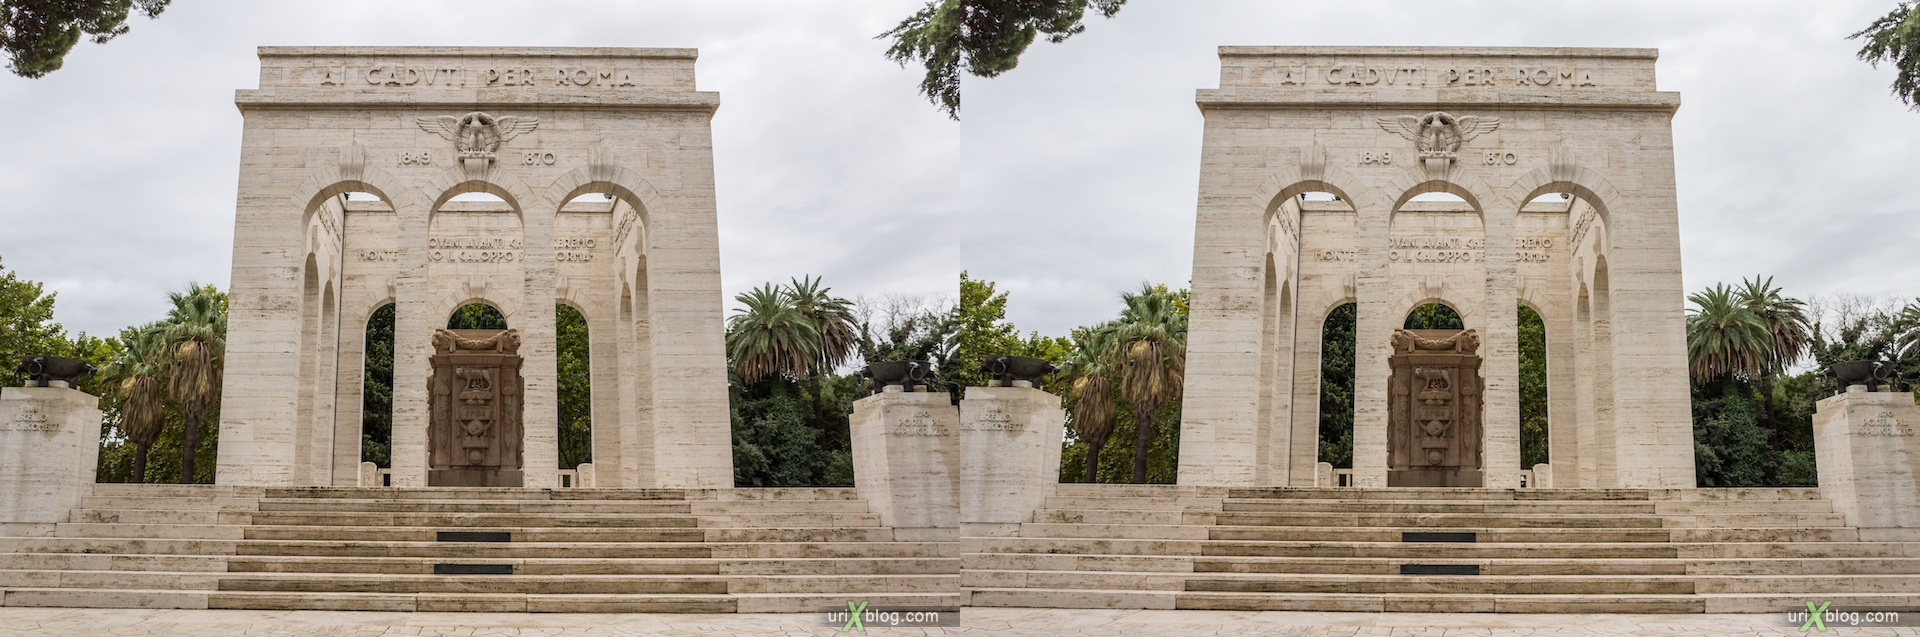 2012, Mausoleum of Garibaldi, Via Garibaldi street, Rome, Italy, Europe, 3D, stereo pair, cross-eyed, crossview, cross view stereo pair